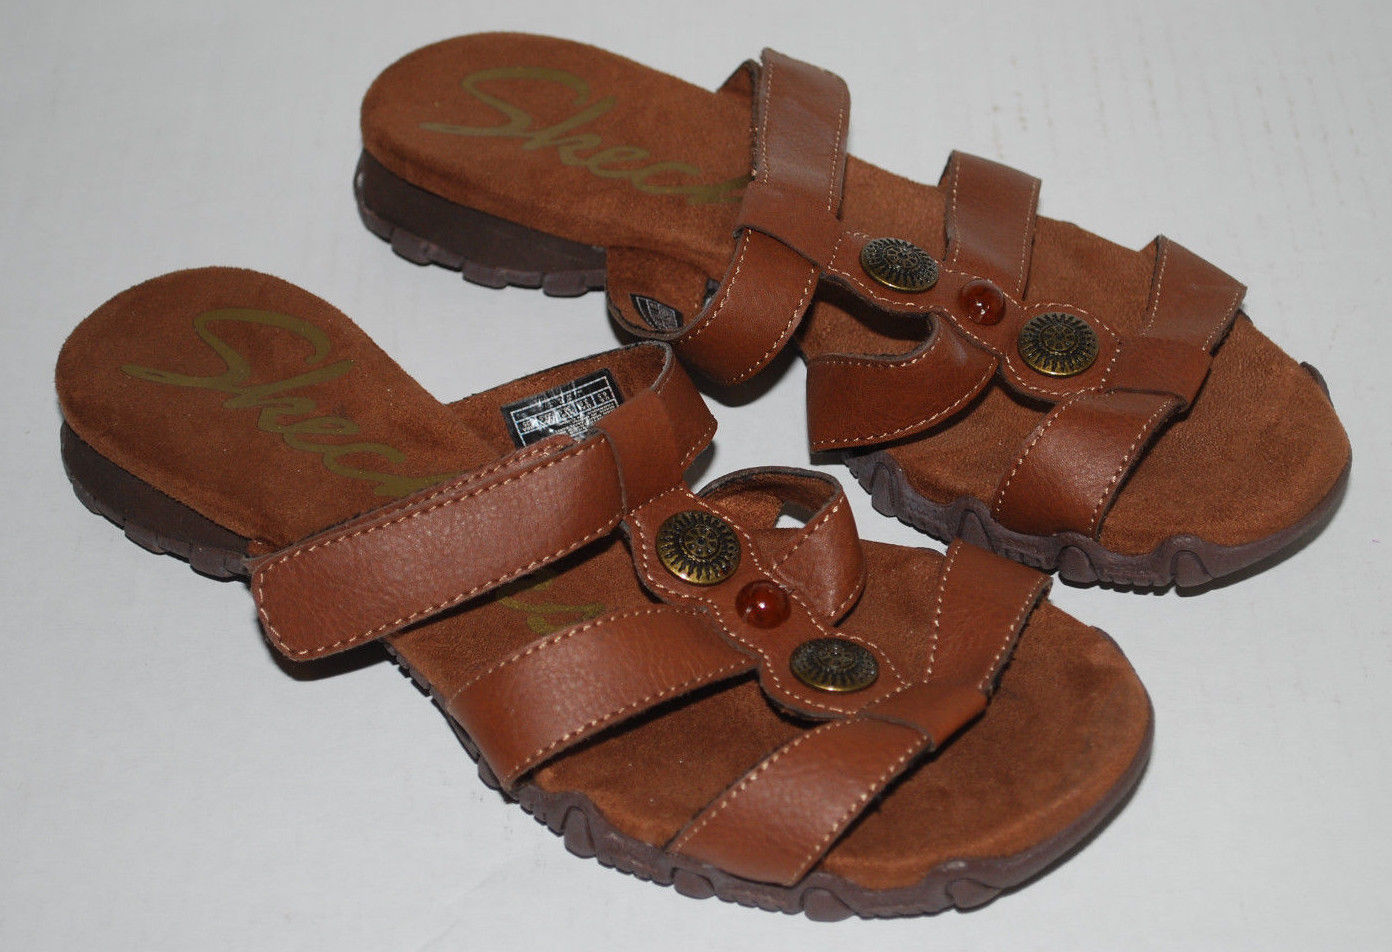 Skechers Sandals Womens 6.5 Brown Leather Open Toes Comfort Shoe Adornments